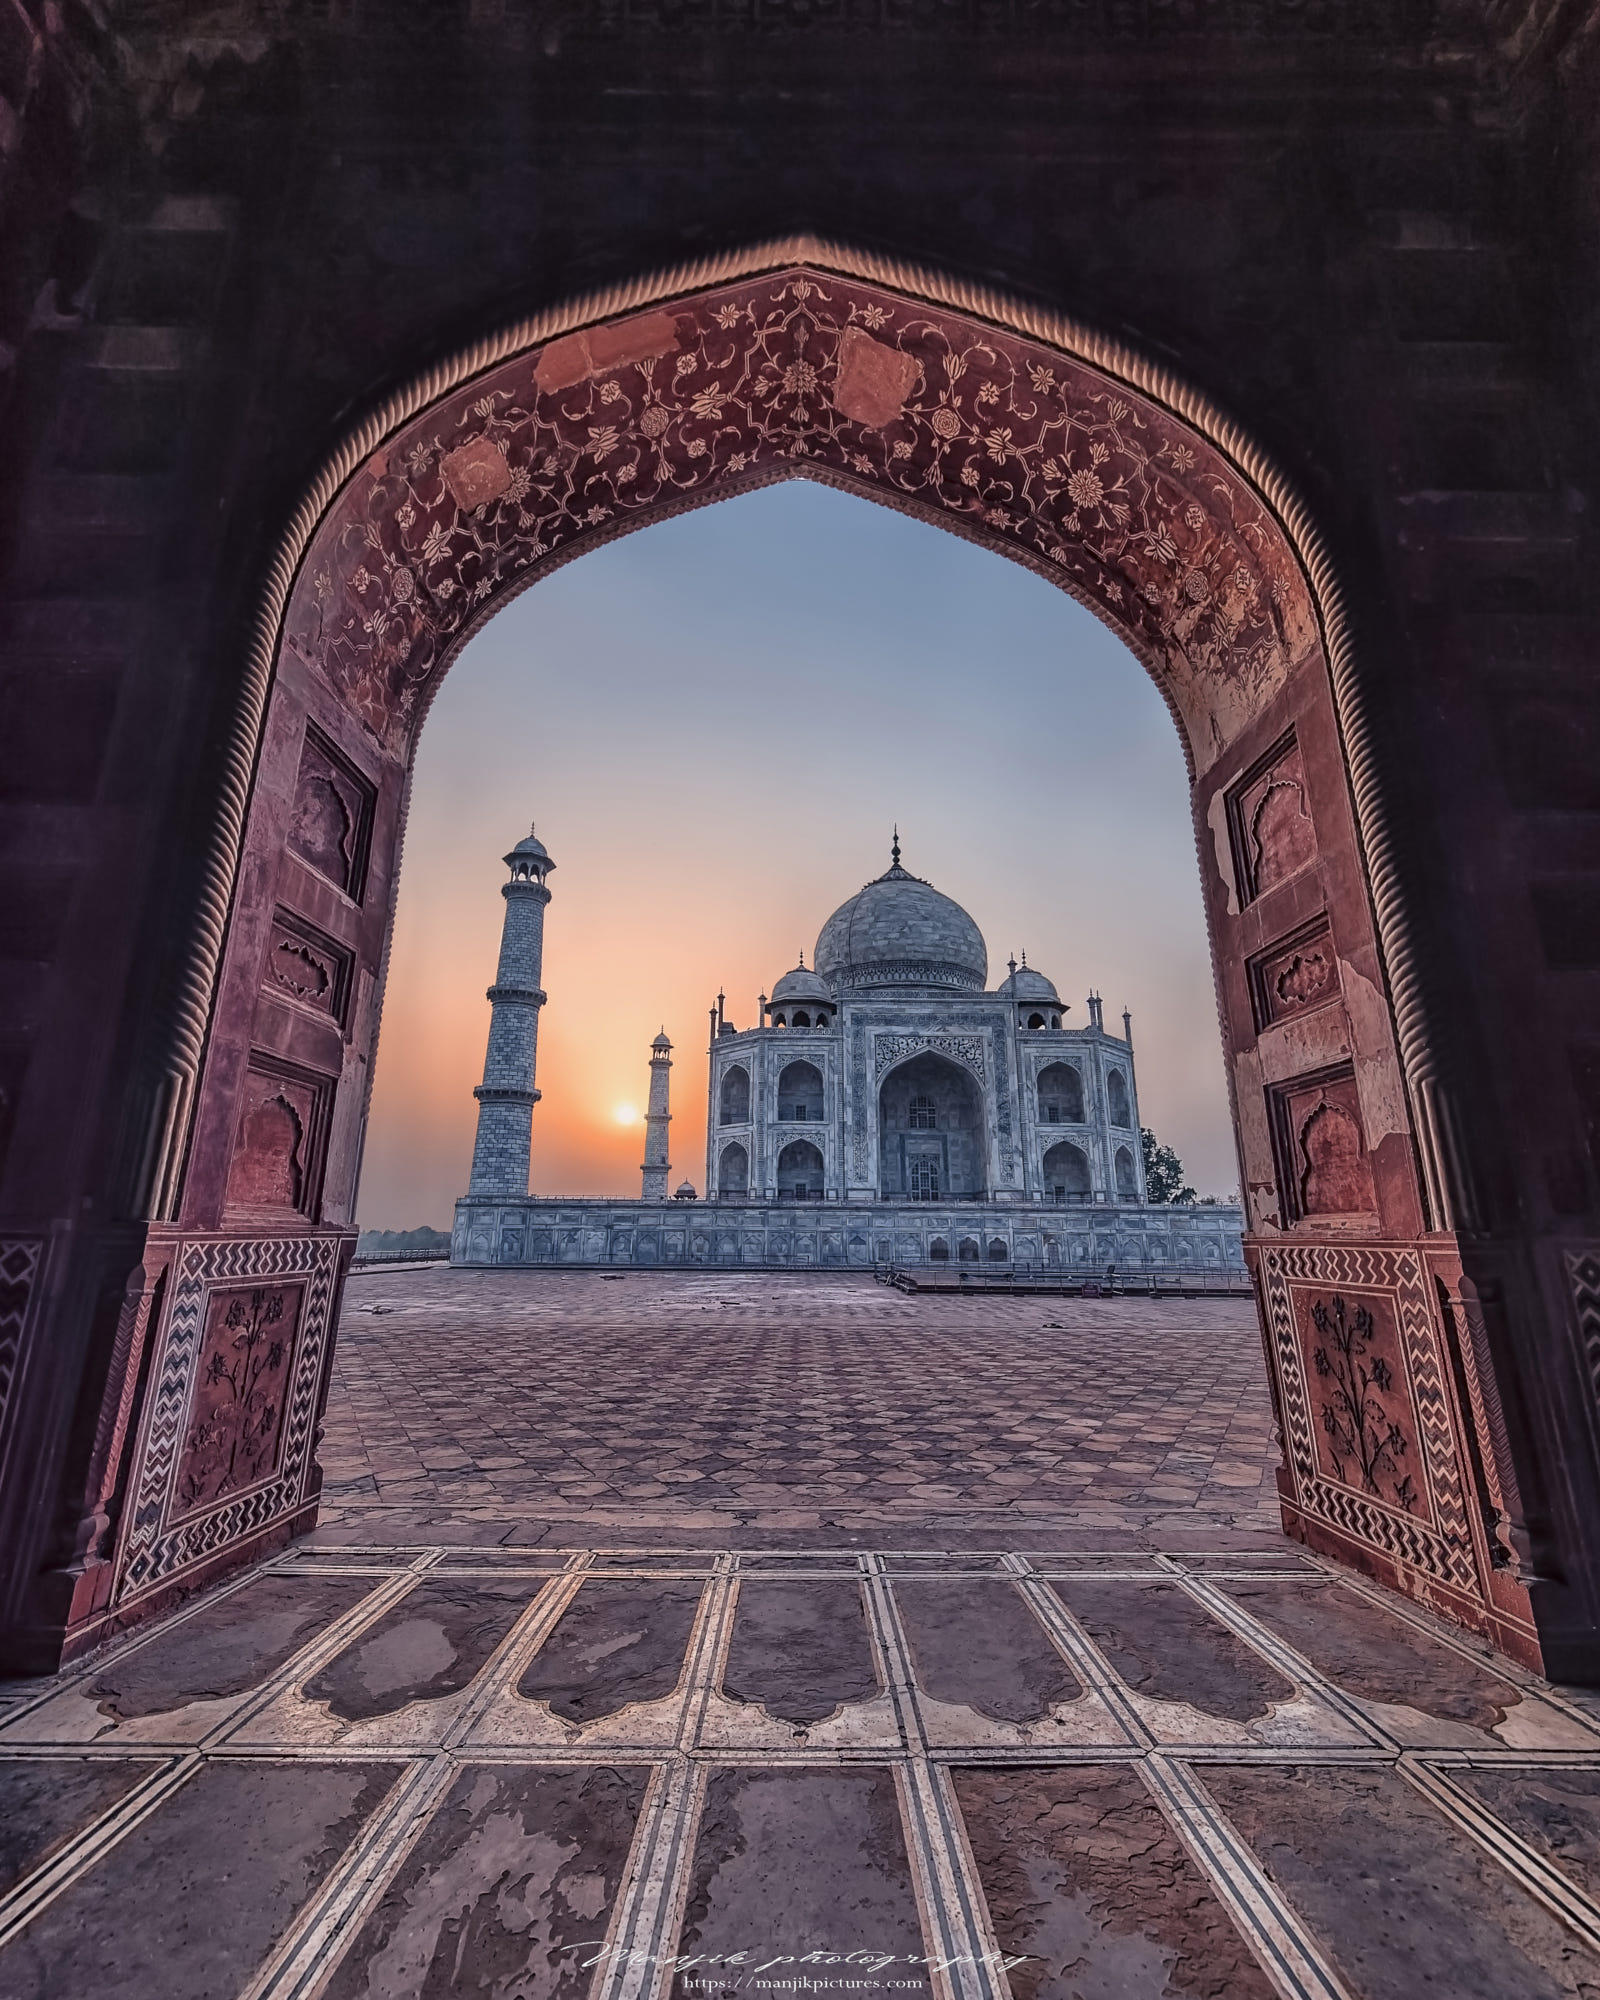 First light on the Taj Mahal